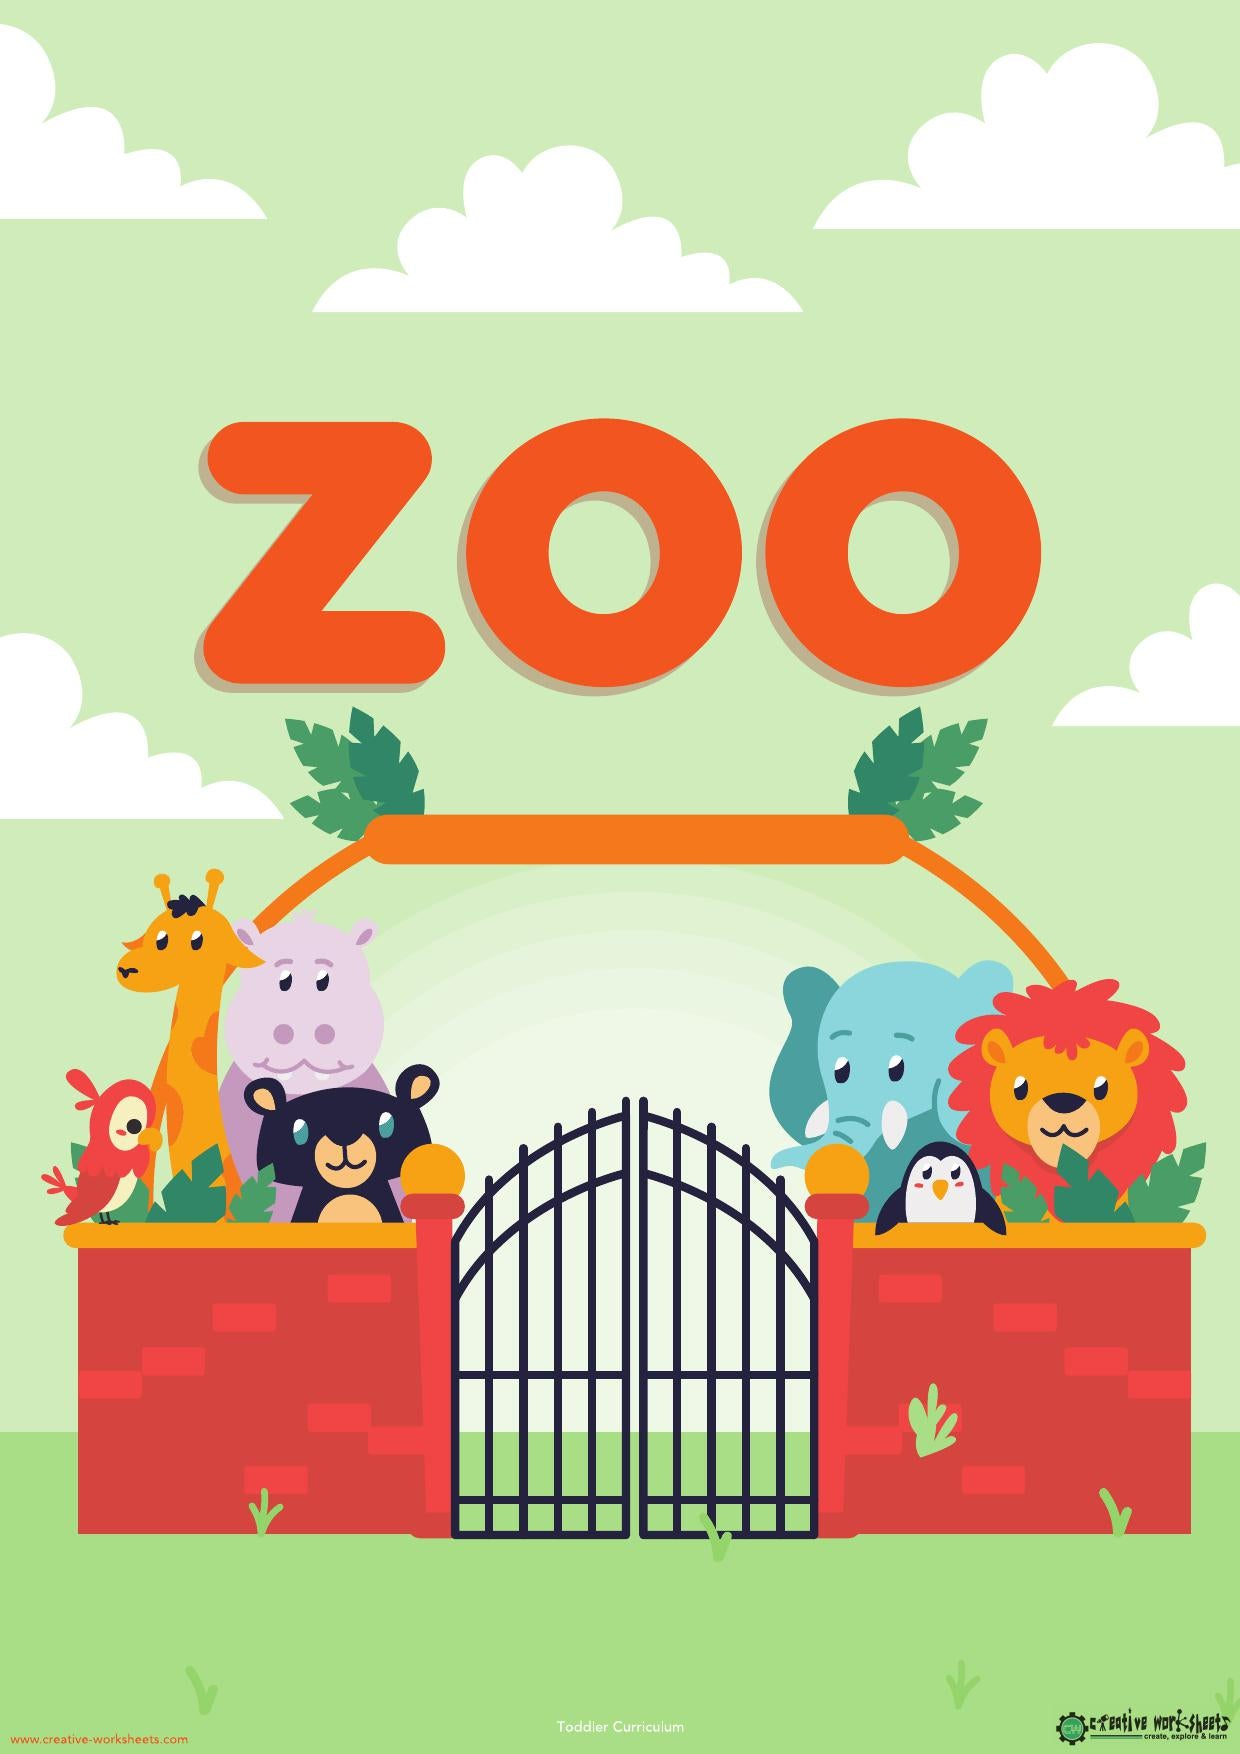 ZOO UNIT - TODDLER CURRICULUM - CreativeWorksheets